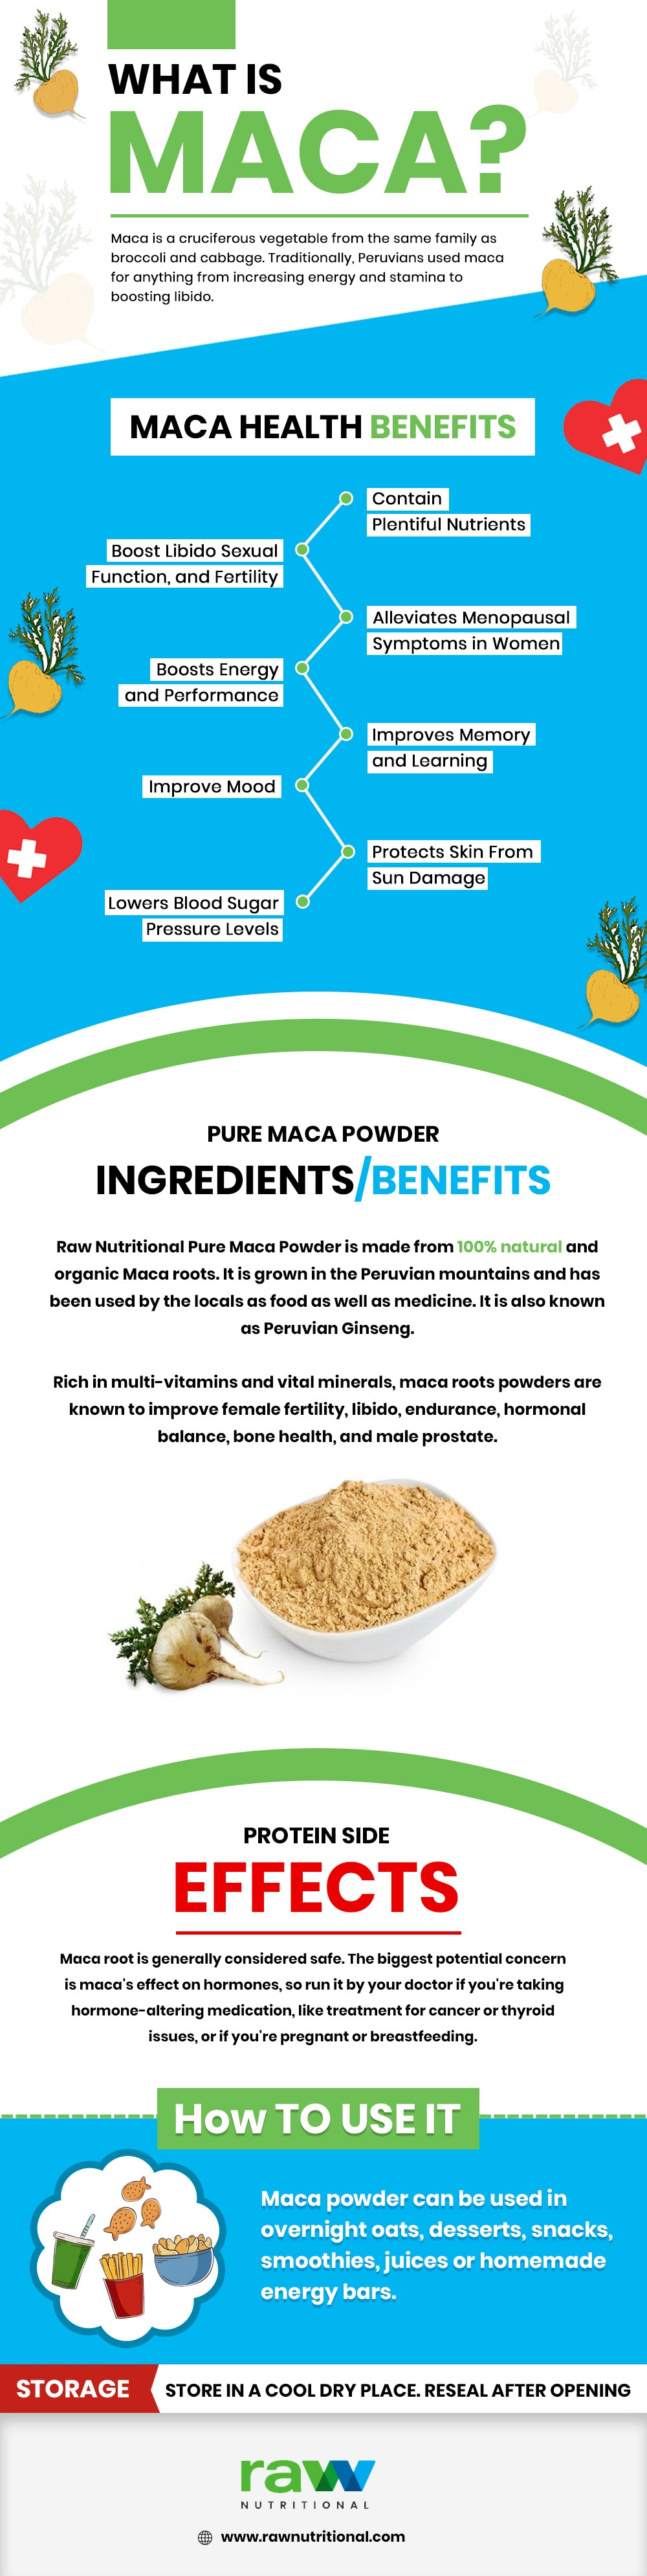 Maca Root Powder Benefits